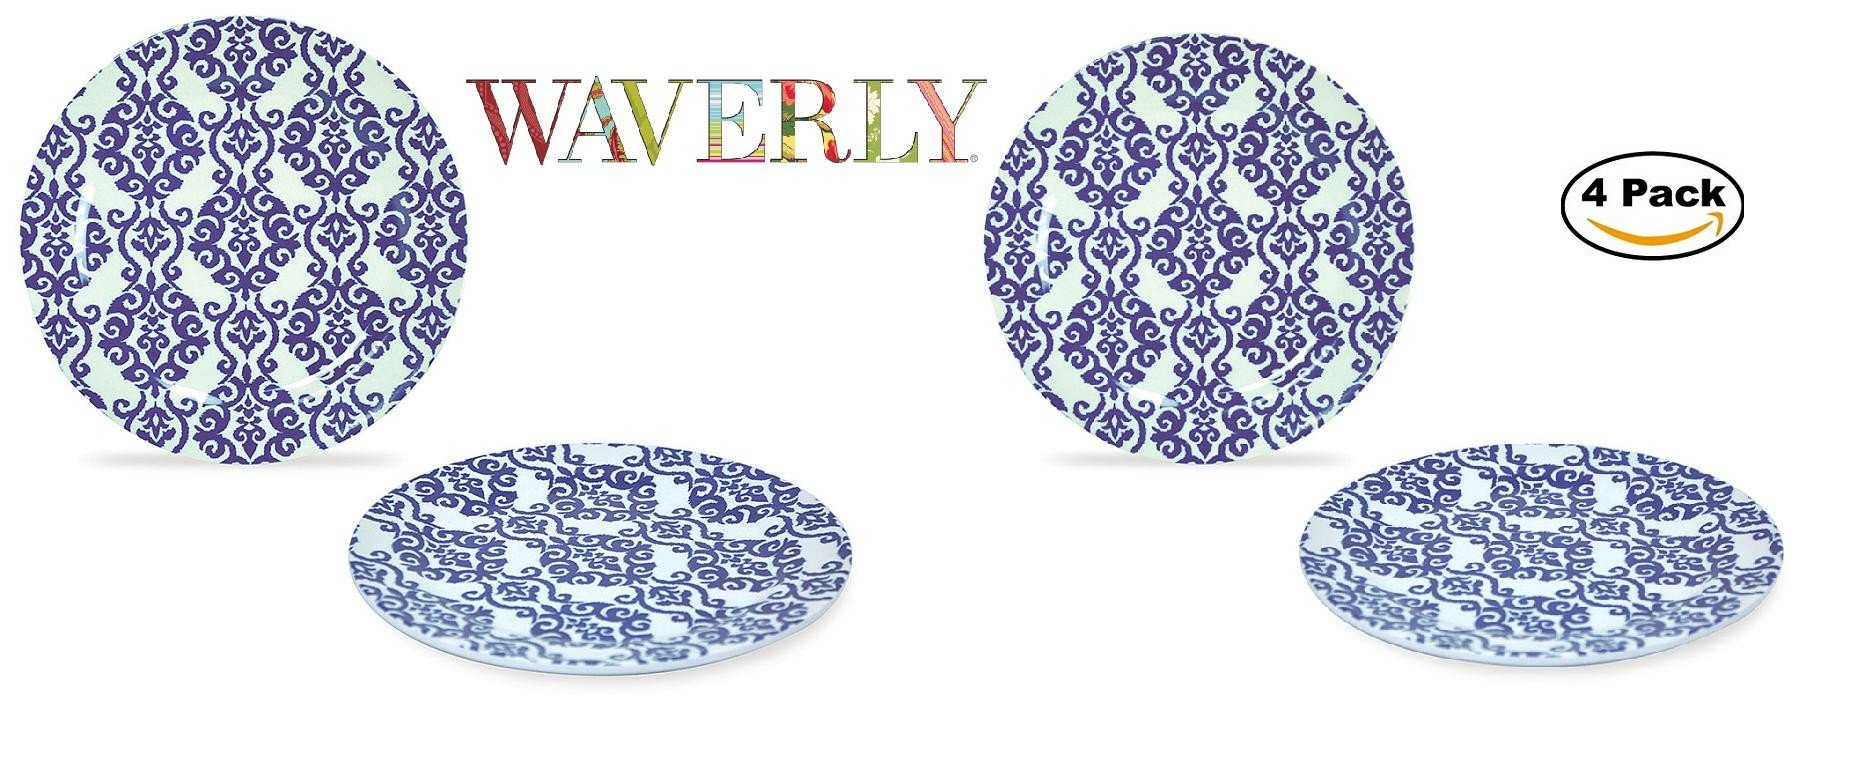 WAVERLY 4-Piece 100% Melamine Salad Plate Set Shatter-Proof and Chip-Resistant Melamine Dinner Plates (Solar Flair Collection) 8''